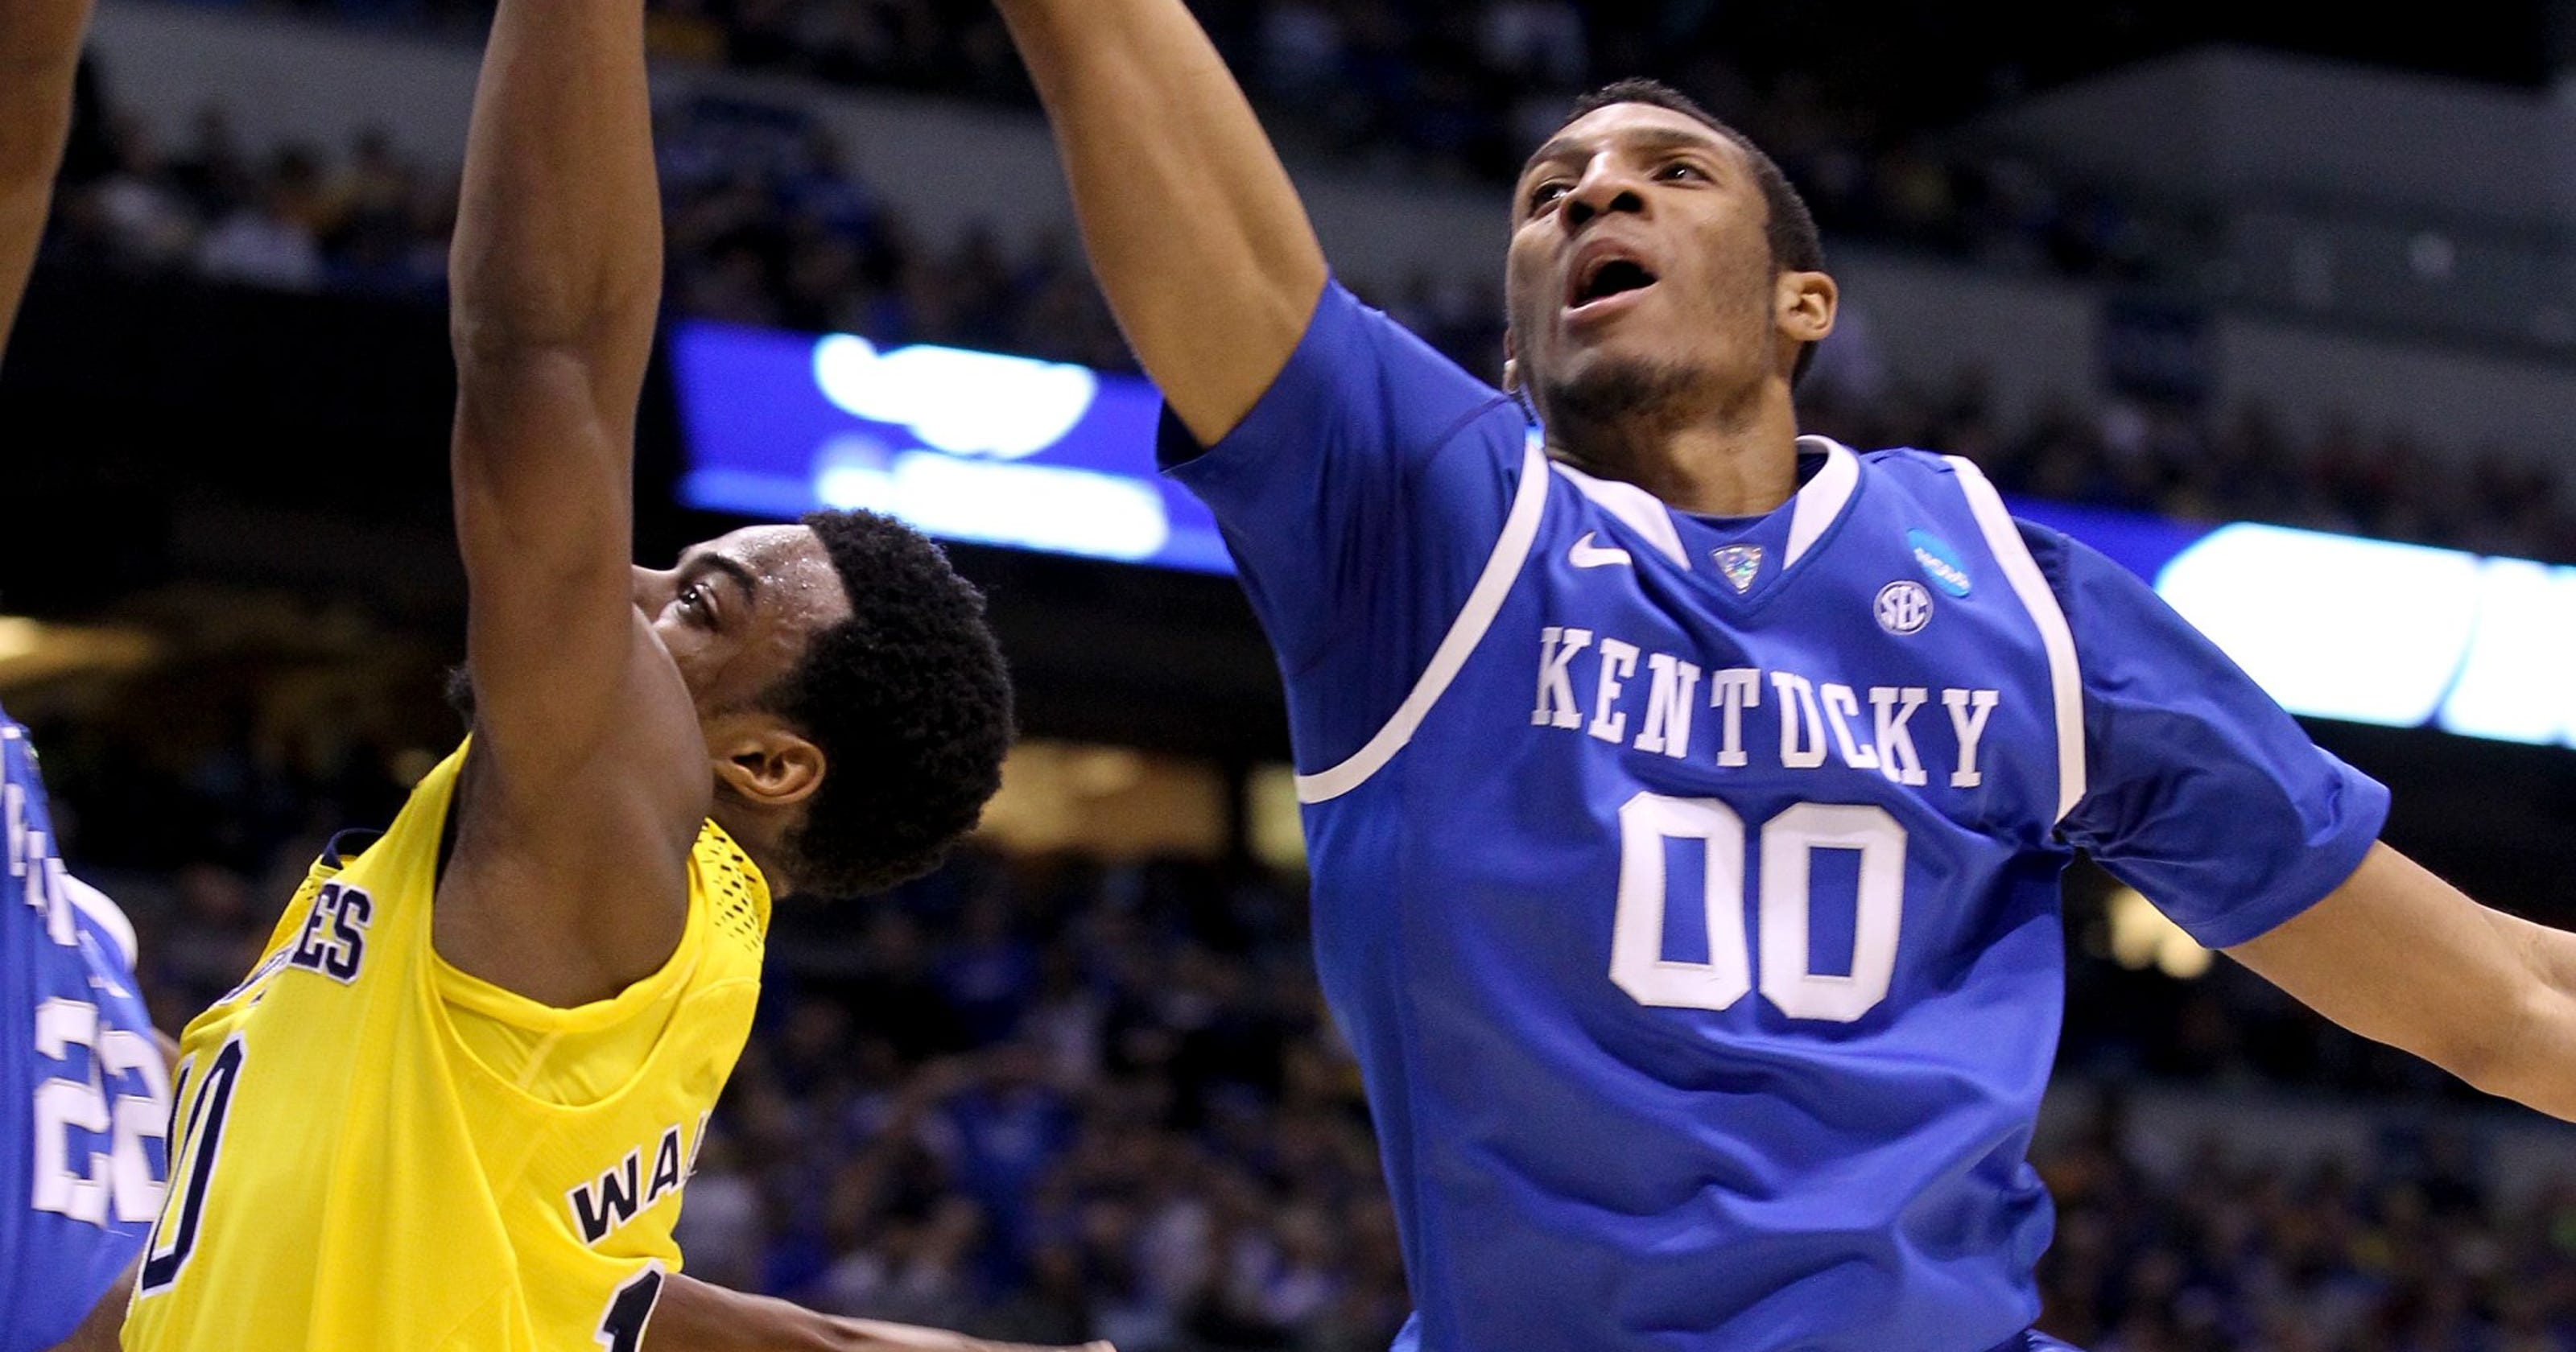 Kentucky basketball in the Bahamas: TV and radio schedule